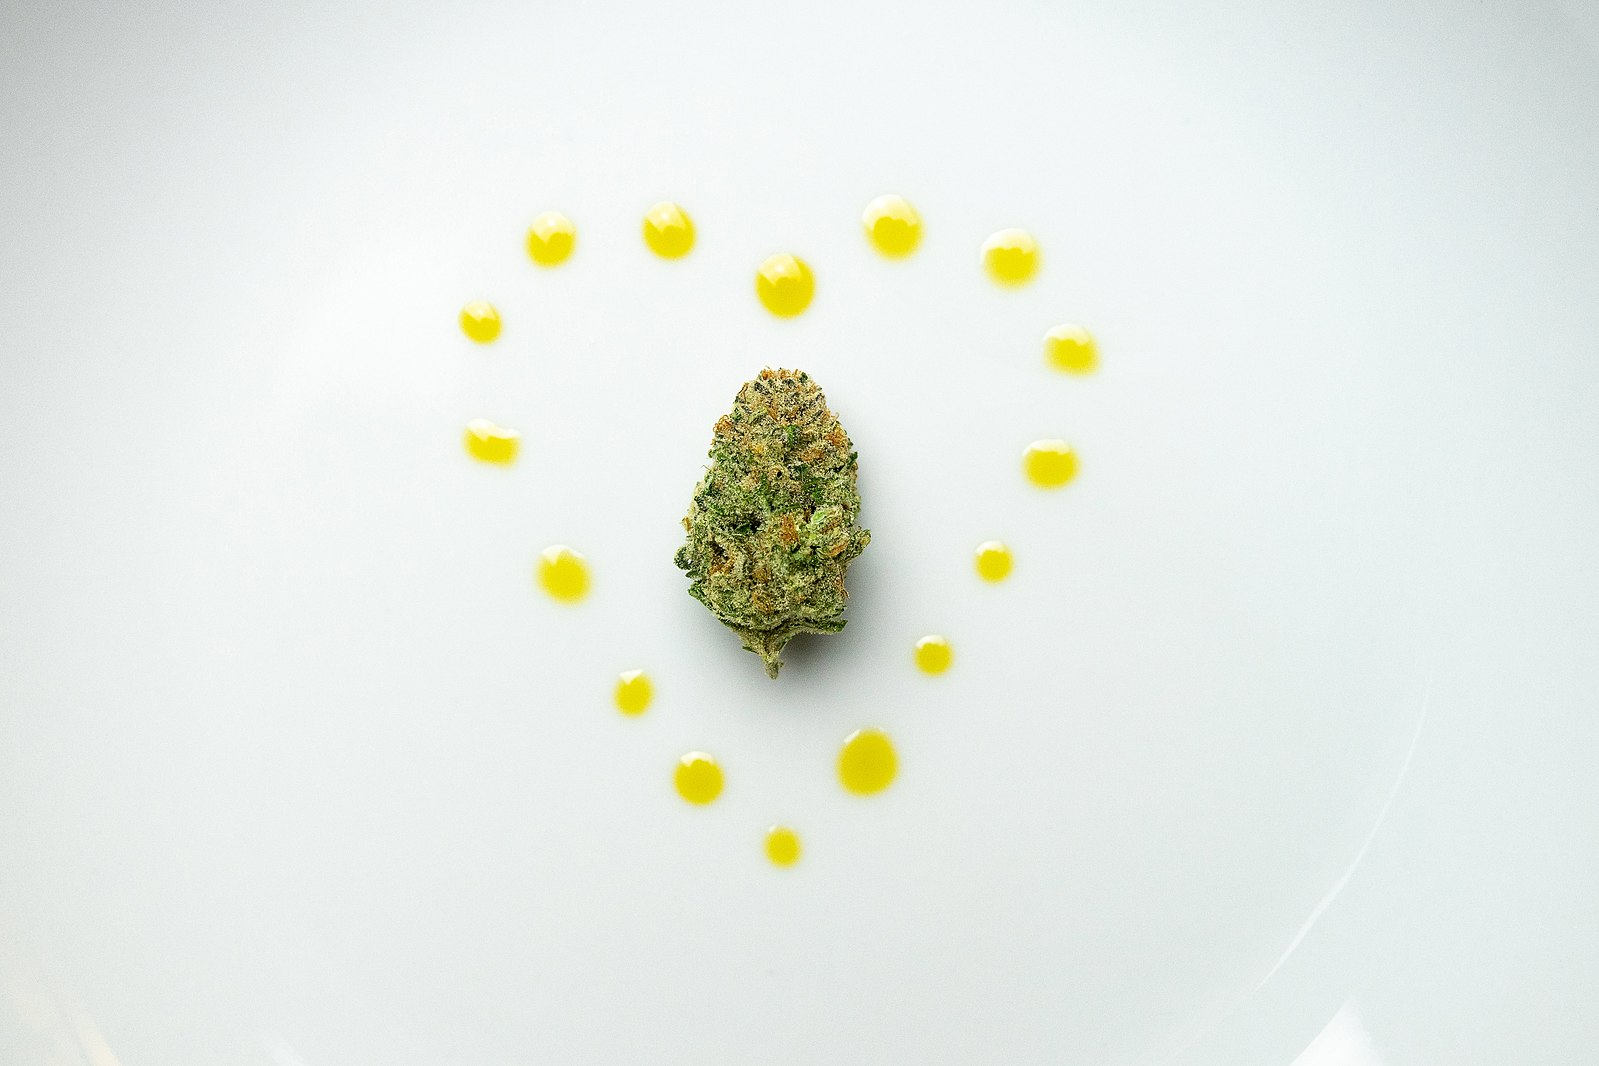 CBD nug surrounded by heart-shaped drops of CBD oil